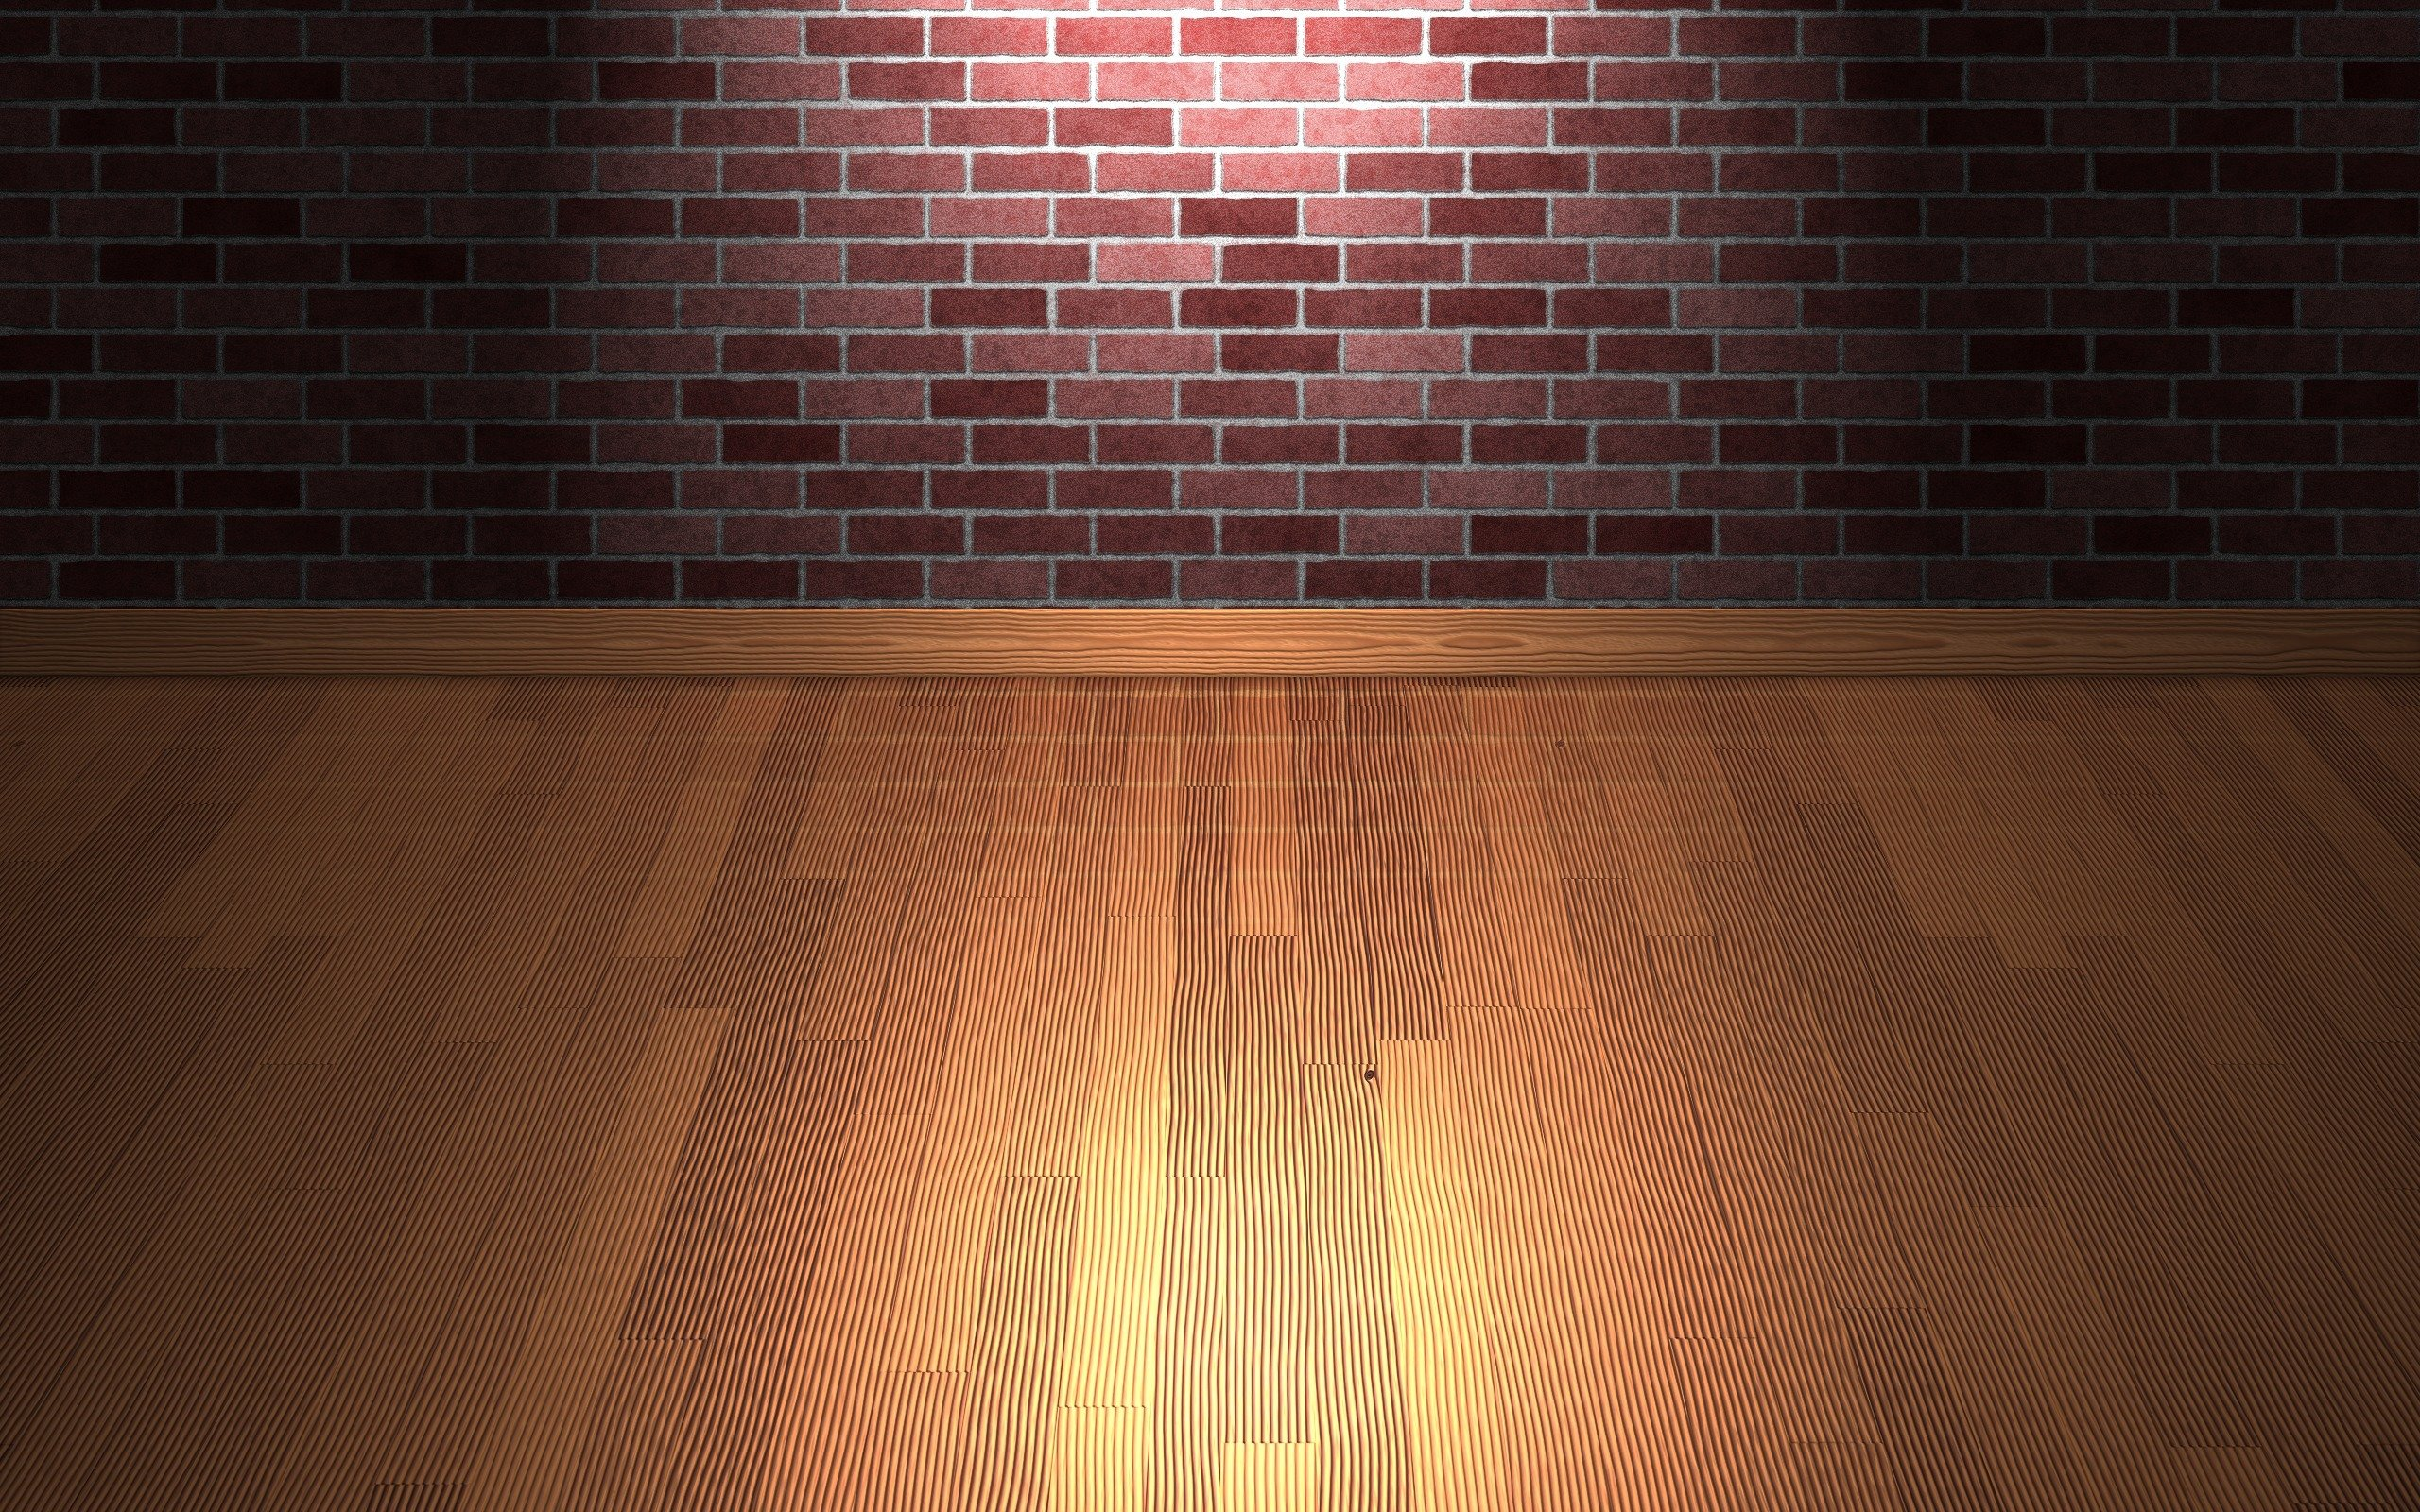 Wooden Floor clipart brick wallpaper ~ stocks Wood Brick And